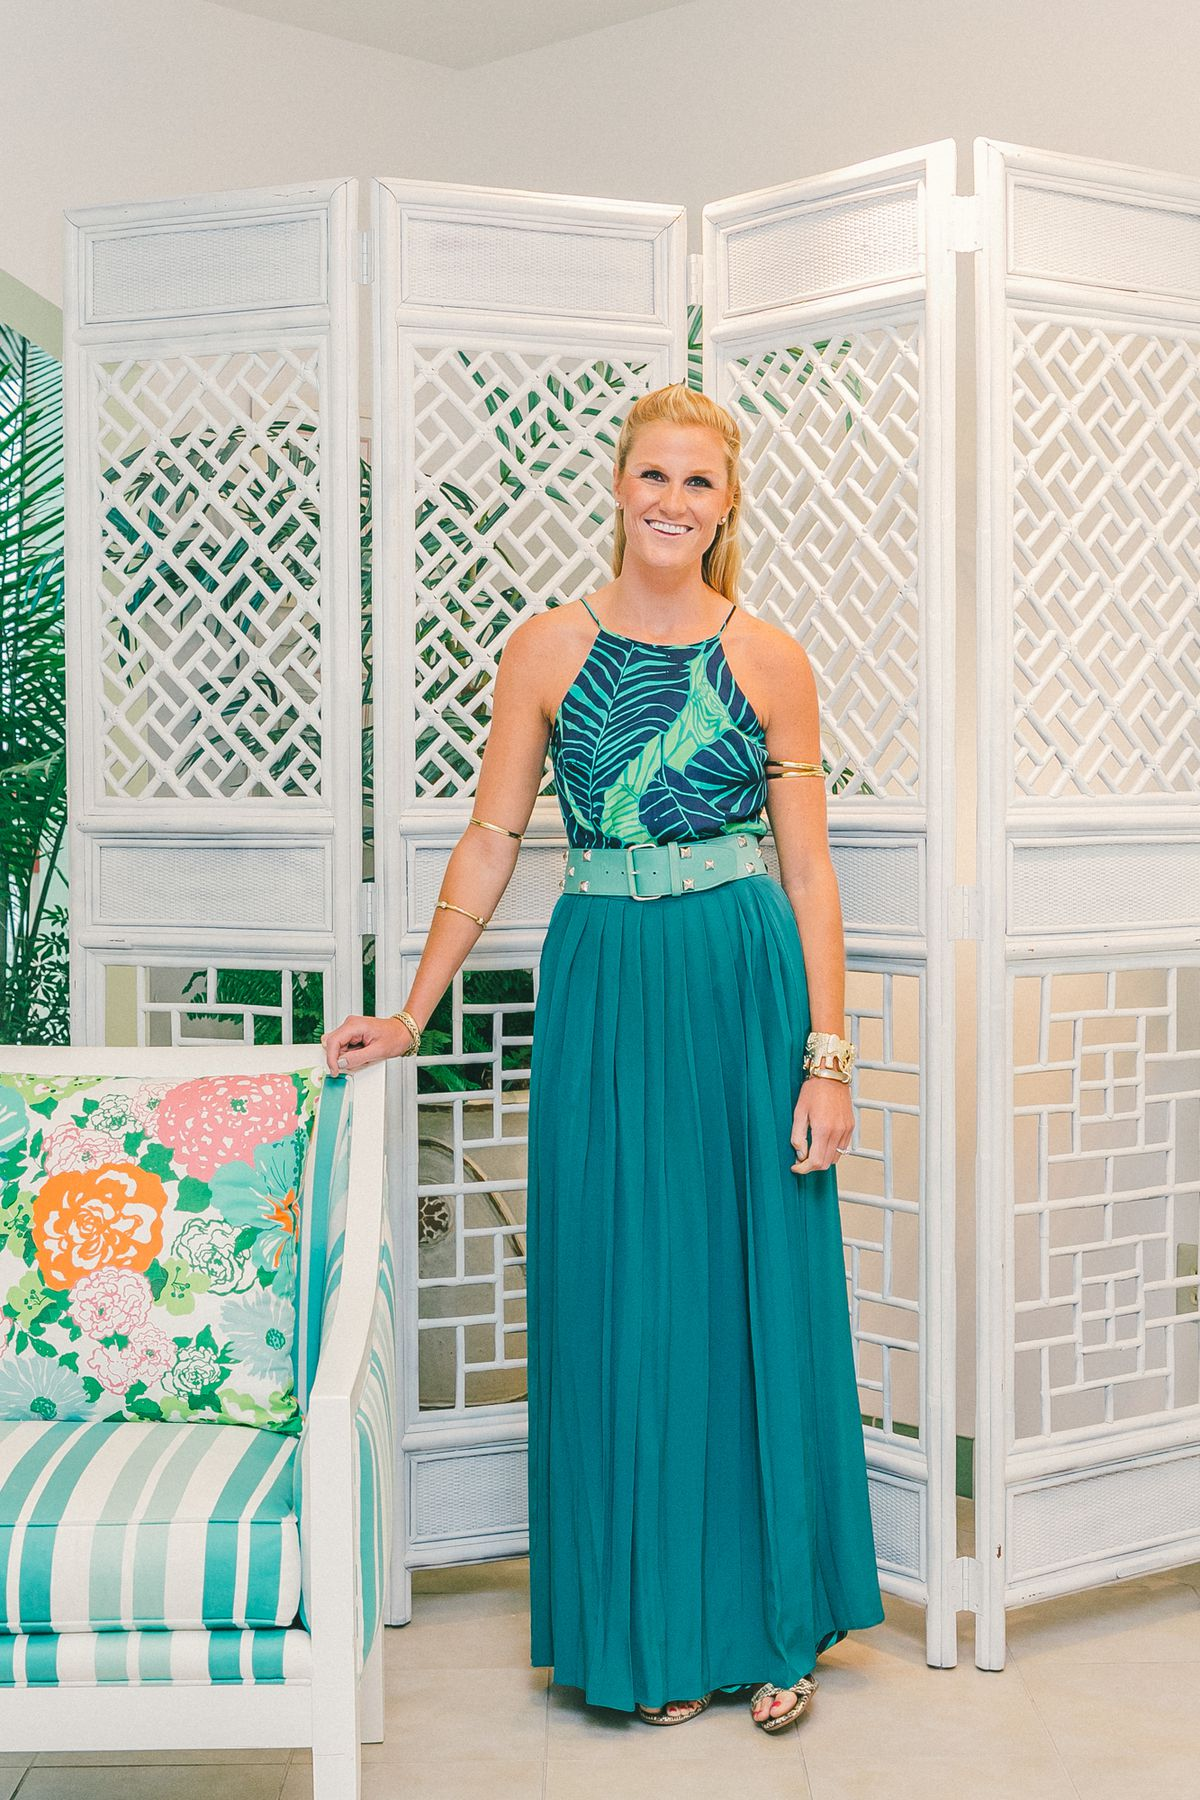 Marguerite Walters Lilly Pulitzer